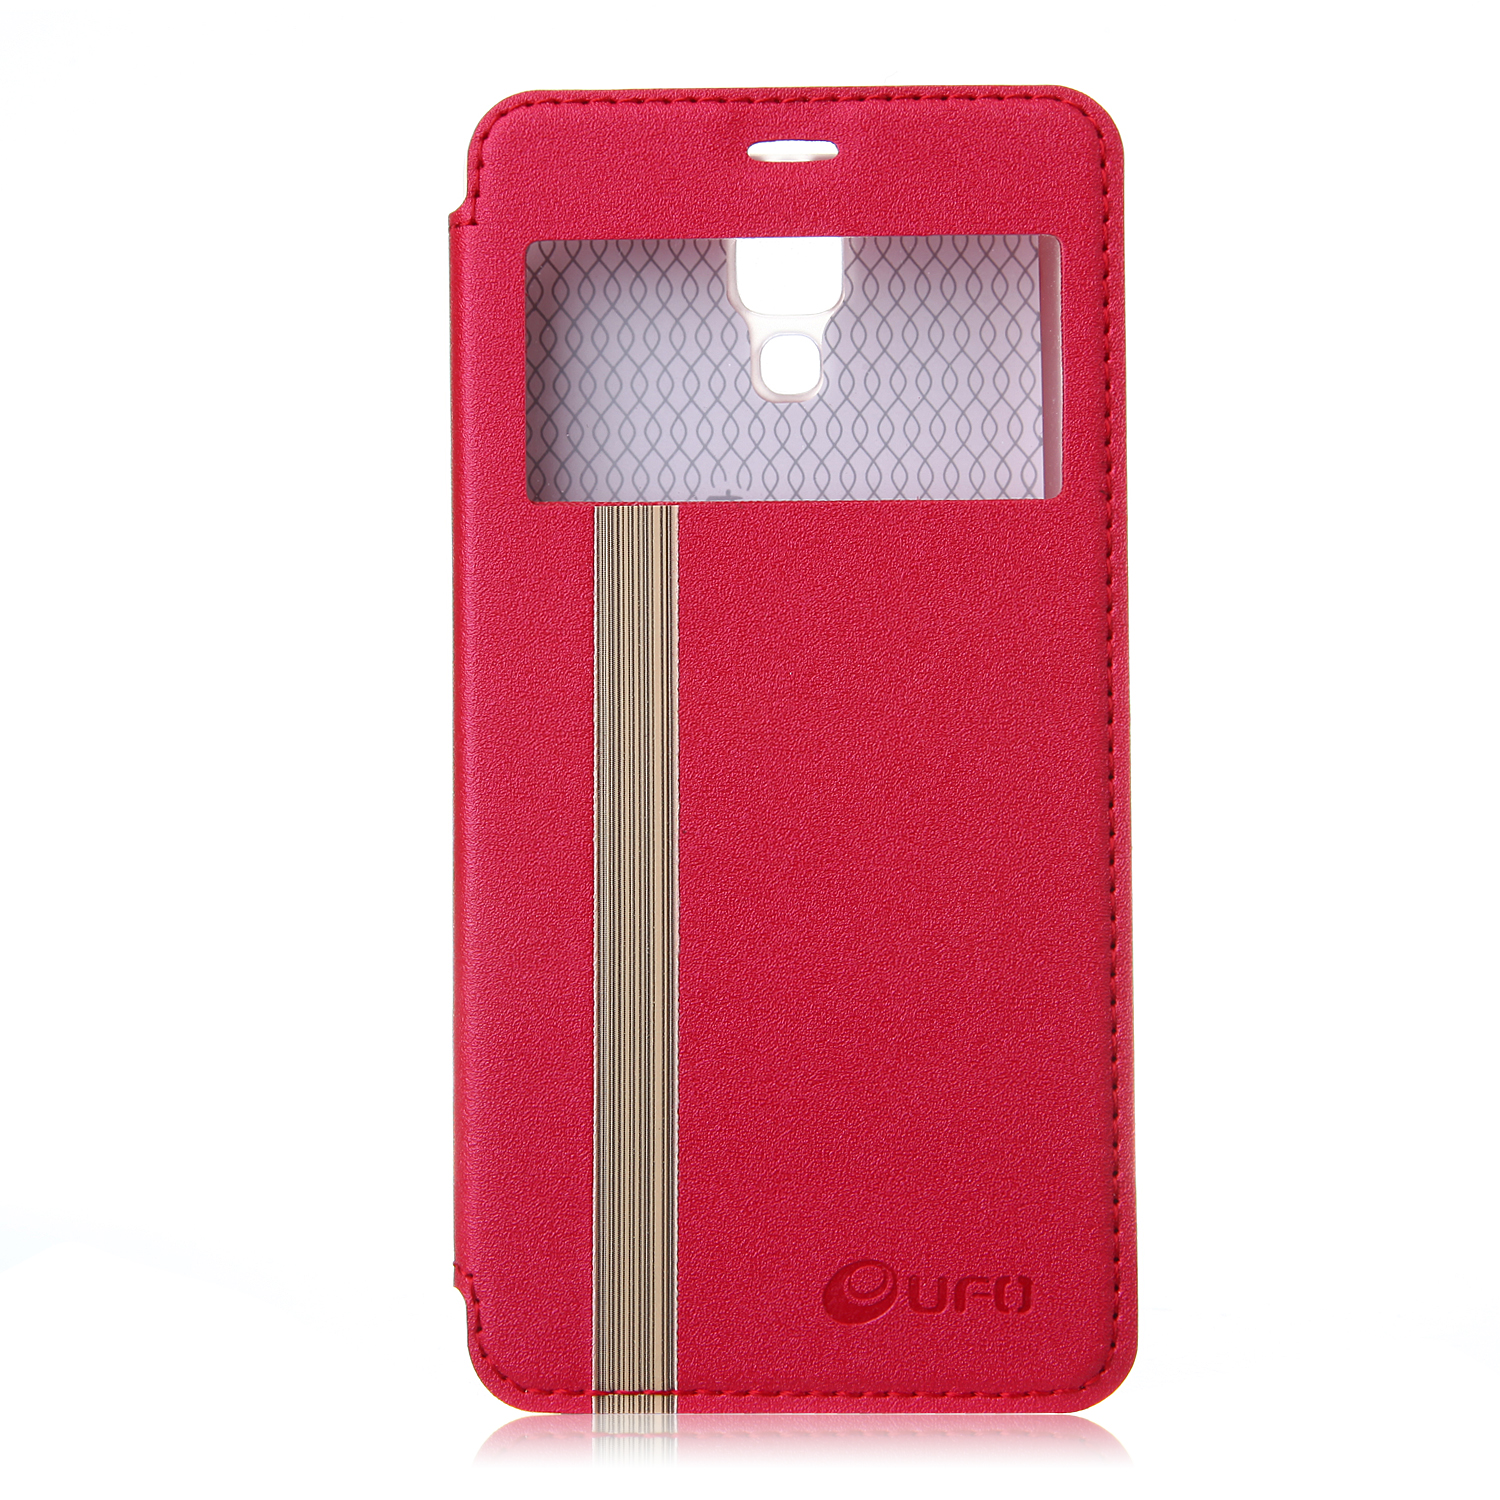 Leather Flip Cover Case Stand Case for XIAOMI MI4 Smartphone Red